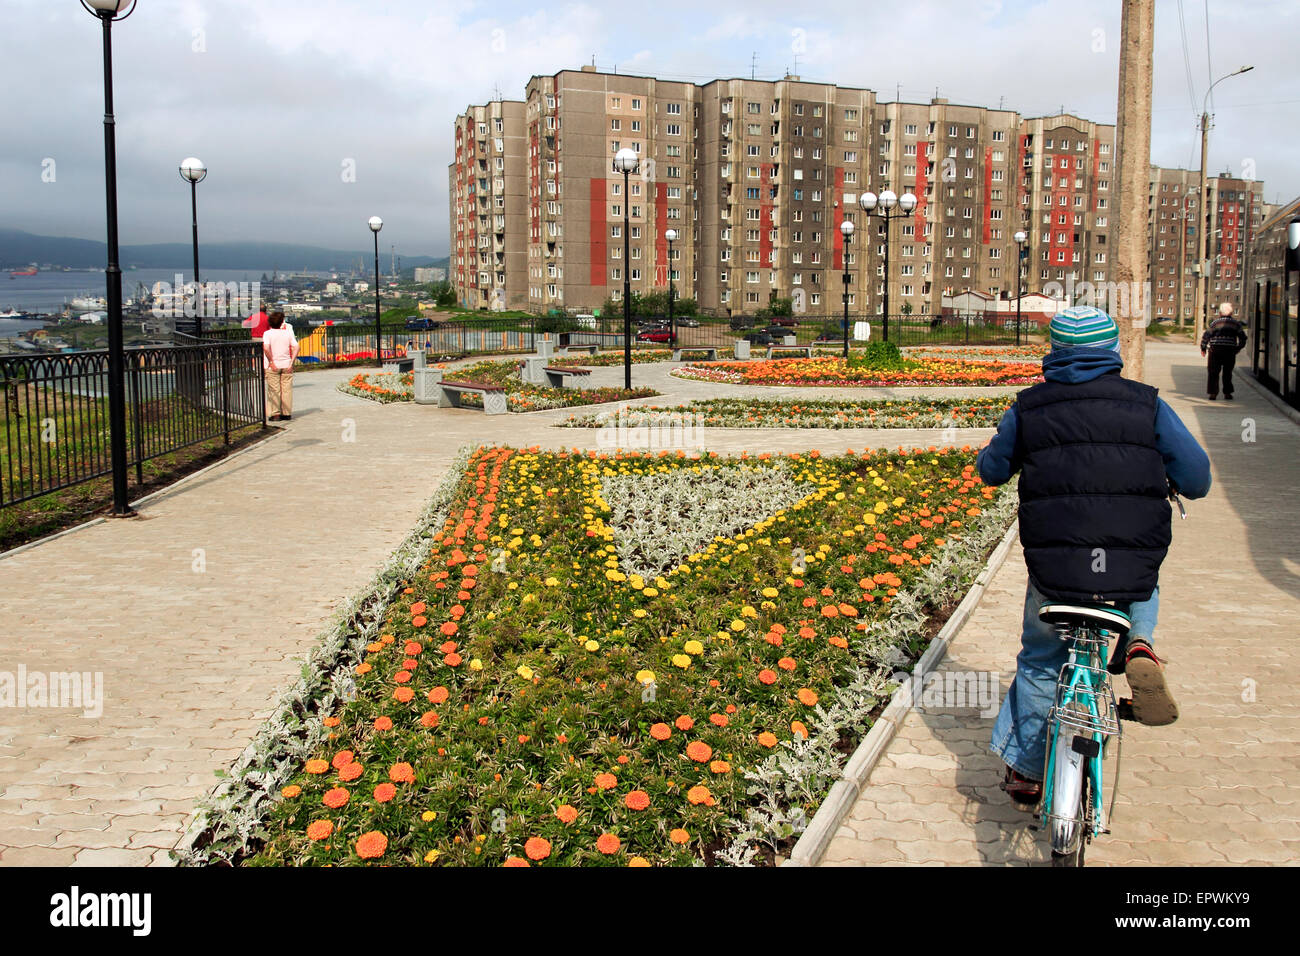 Housing estate overlooking the Port of Murmansk, Russia - Stock Image